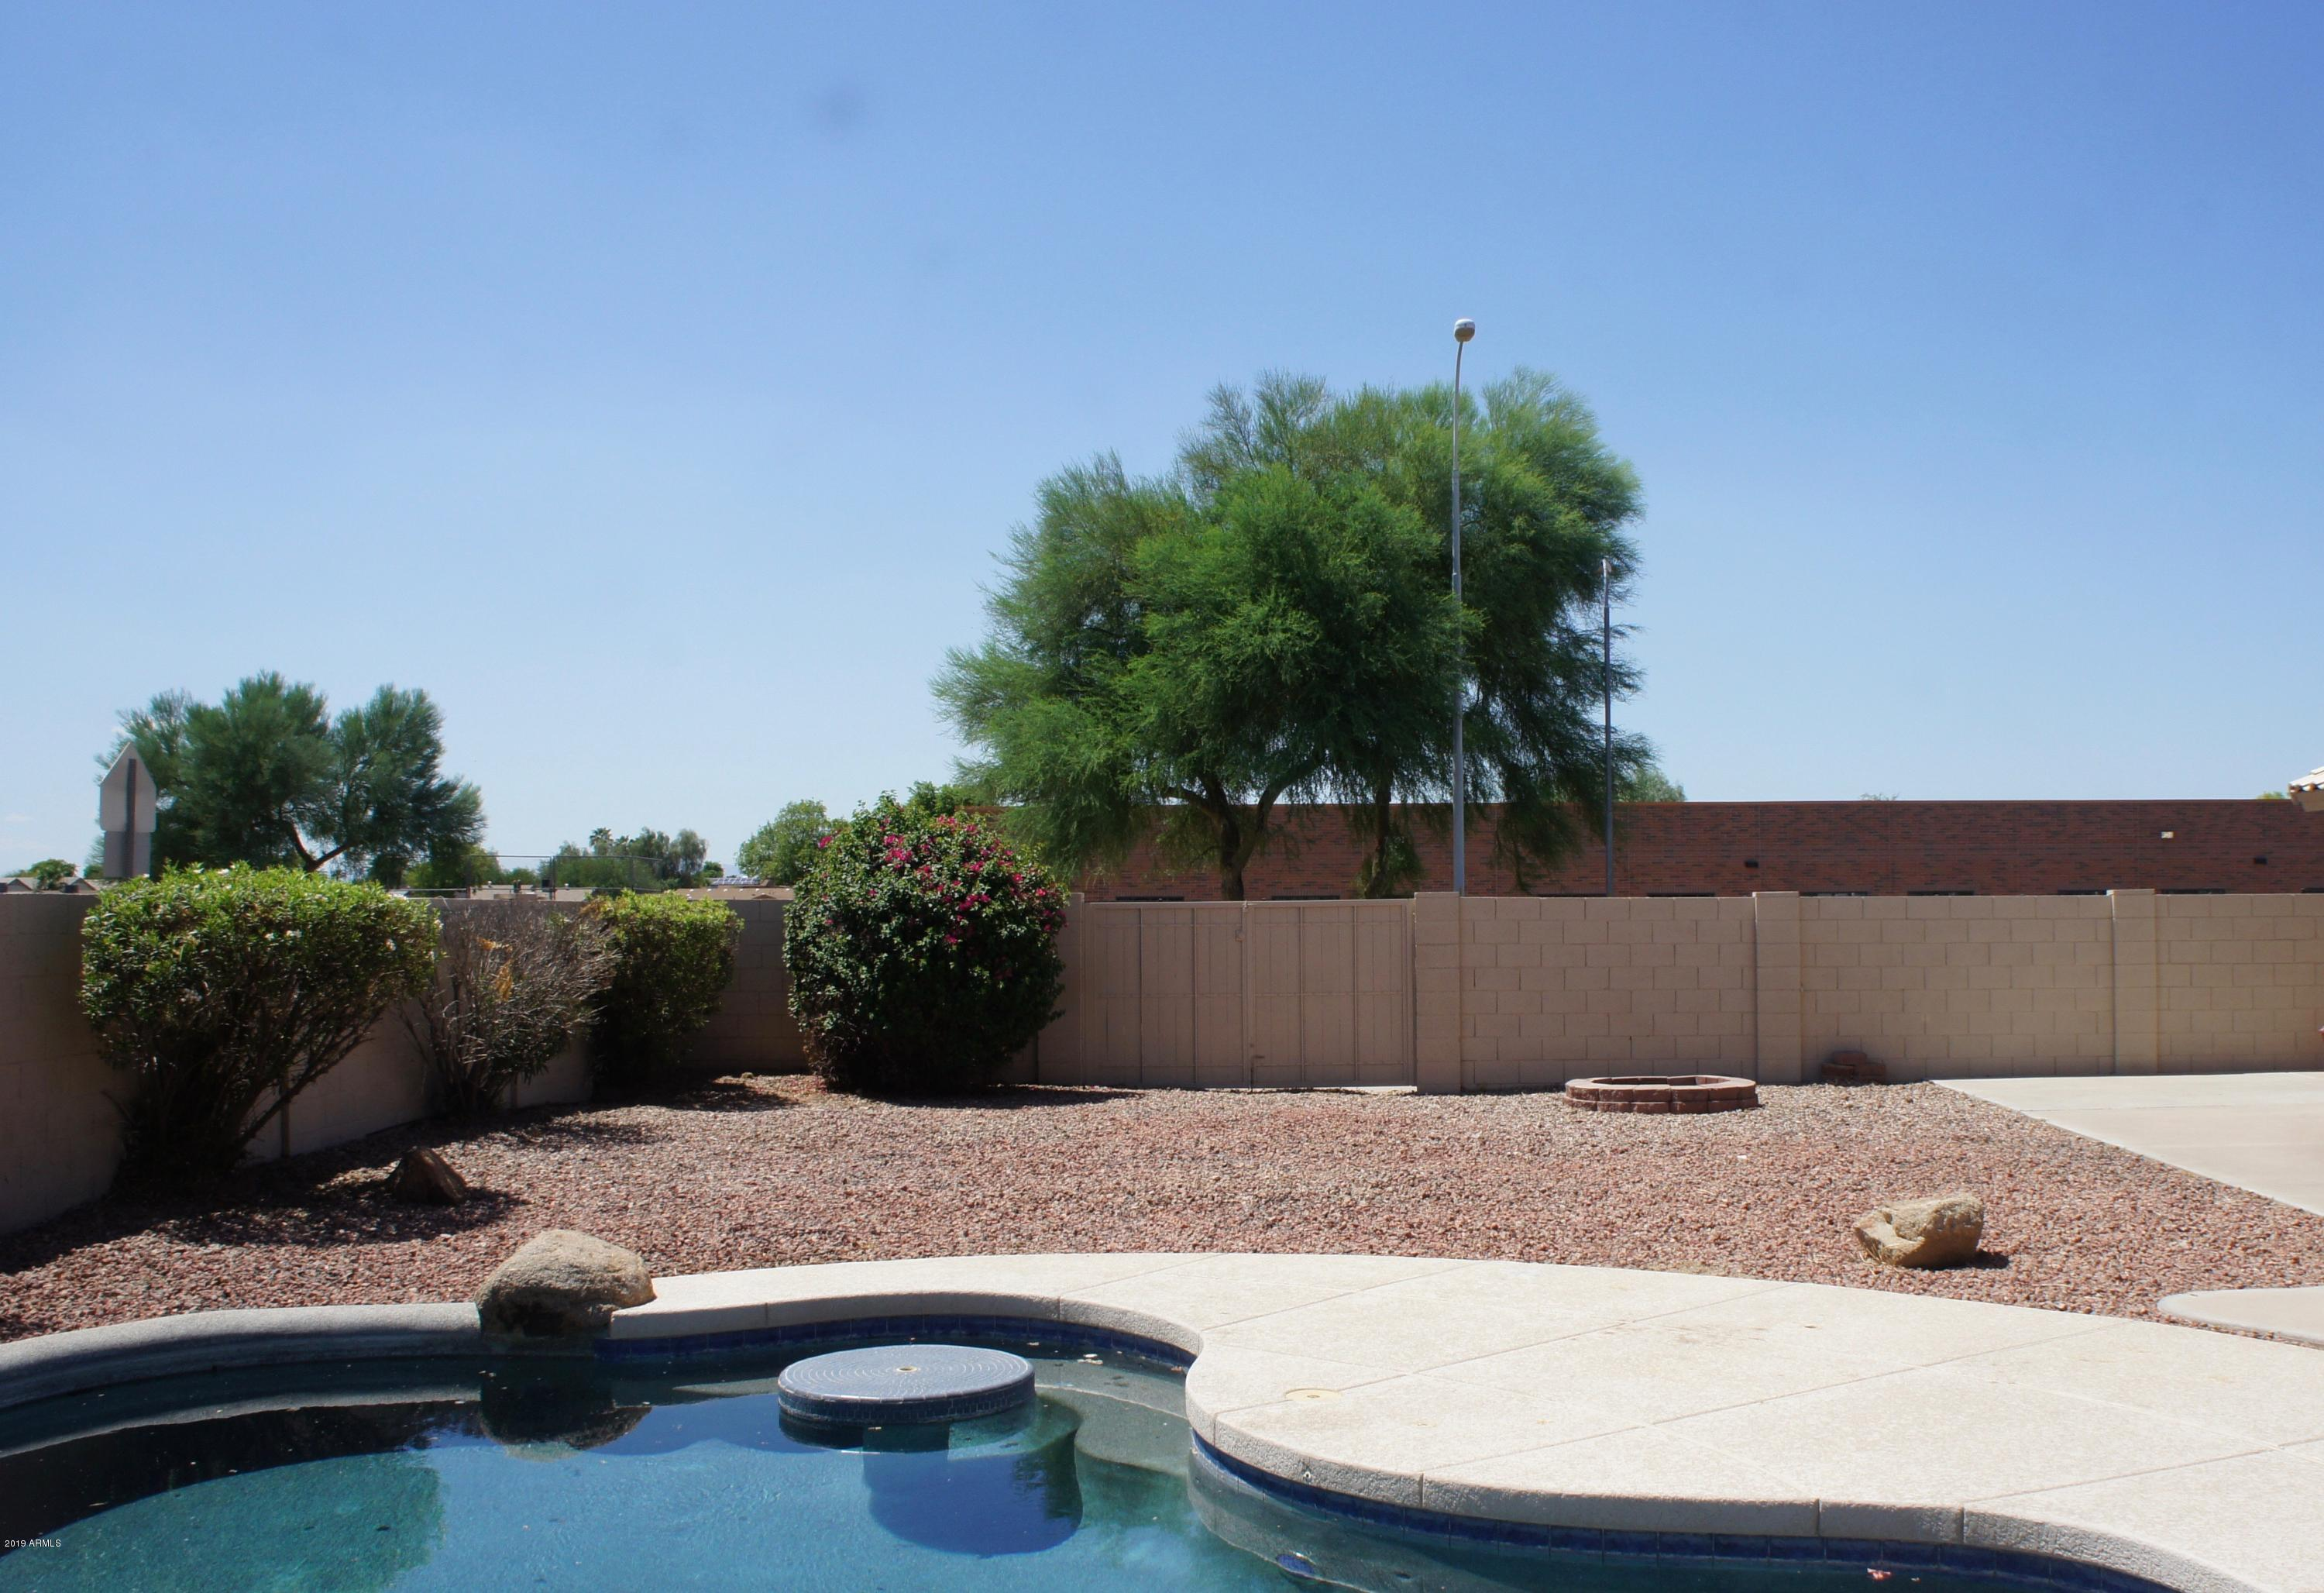 MLS 5951339 13307 E BUTLER Street, Chandler, AZ 85225 Chandler AZ Private Pool